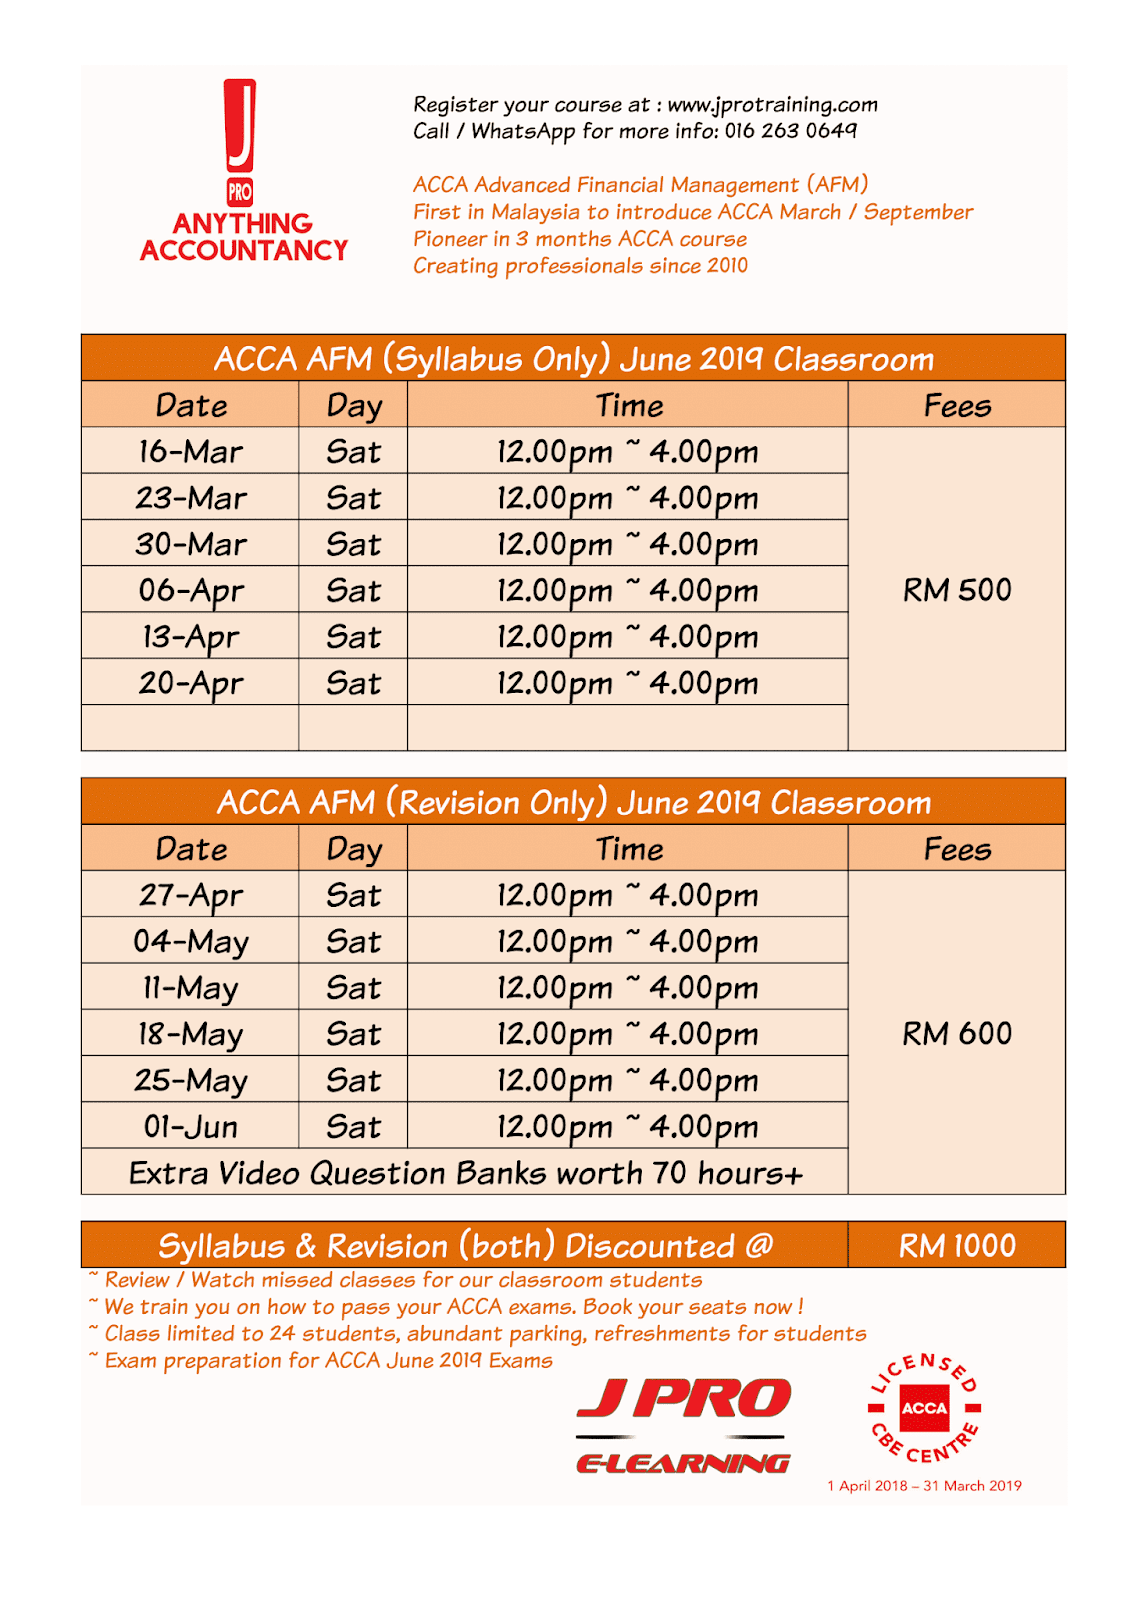 J Pro Business Training: ACCA JUNE 2019 EXAM PREPARATION